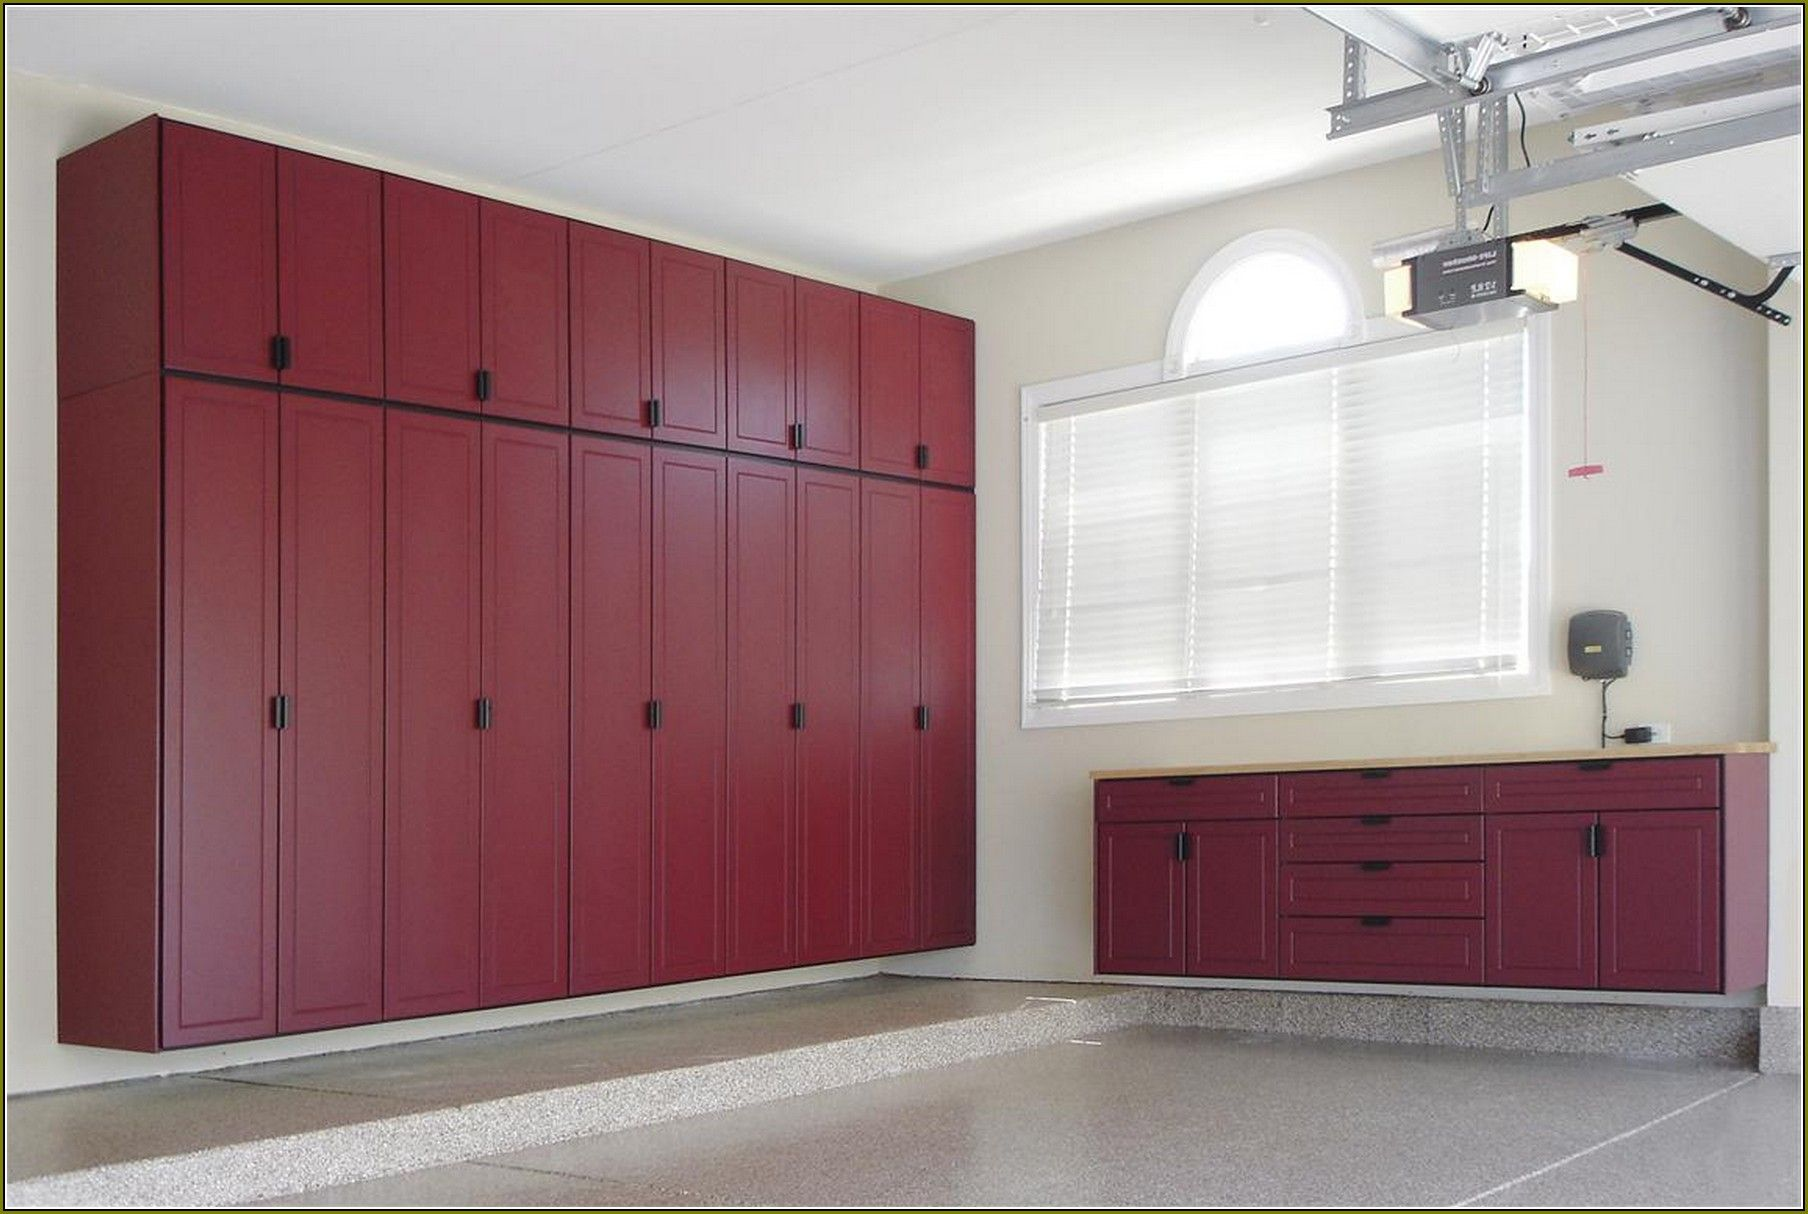 Garage Cabinet Plans Garage Cabinets Plans Plywood Garage In 2019 Garage Garage